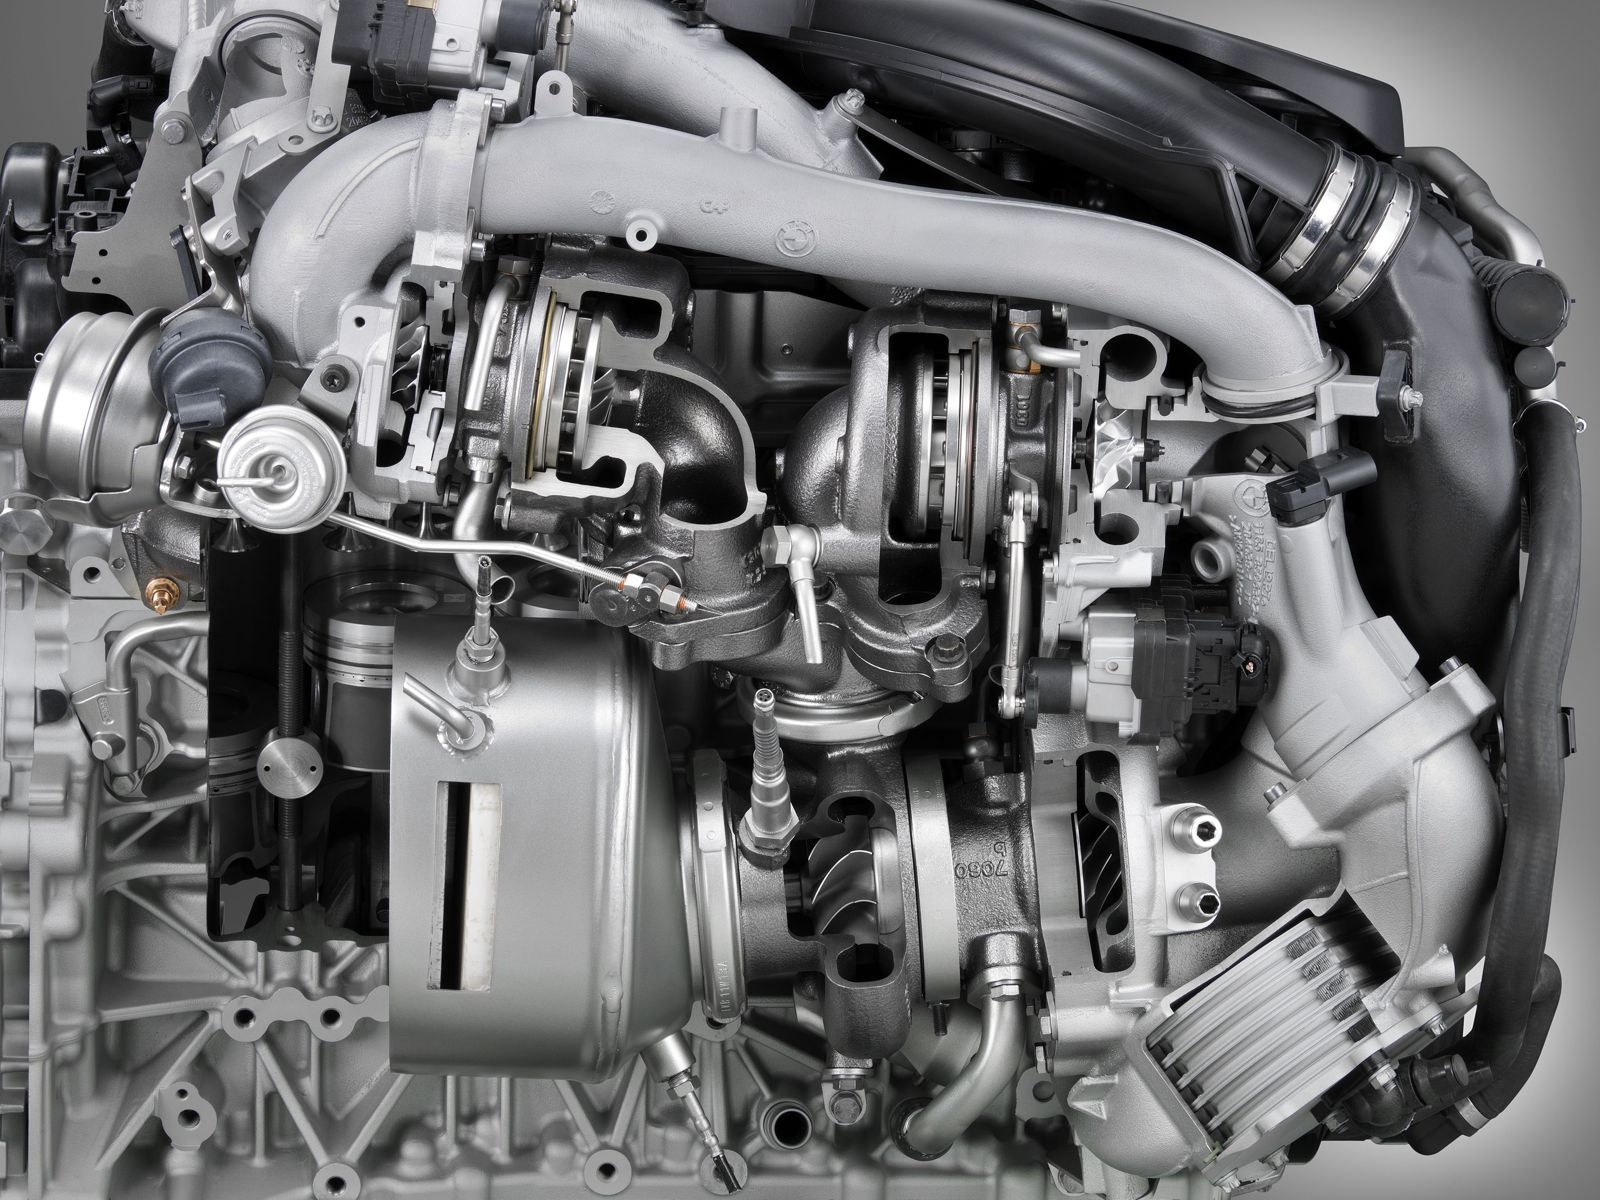 Turbo Diesel Transport Truck and Fuel Dilution Problem